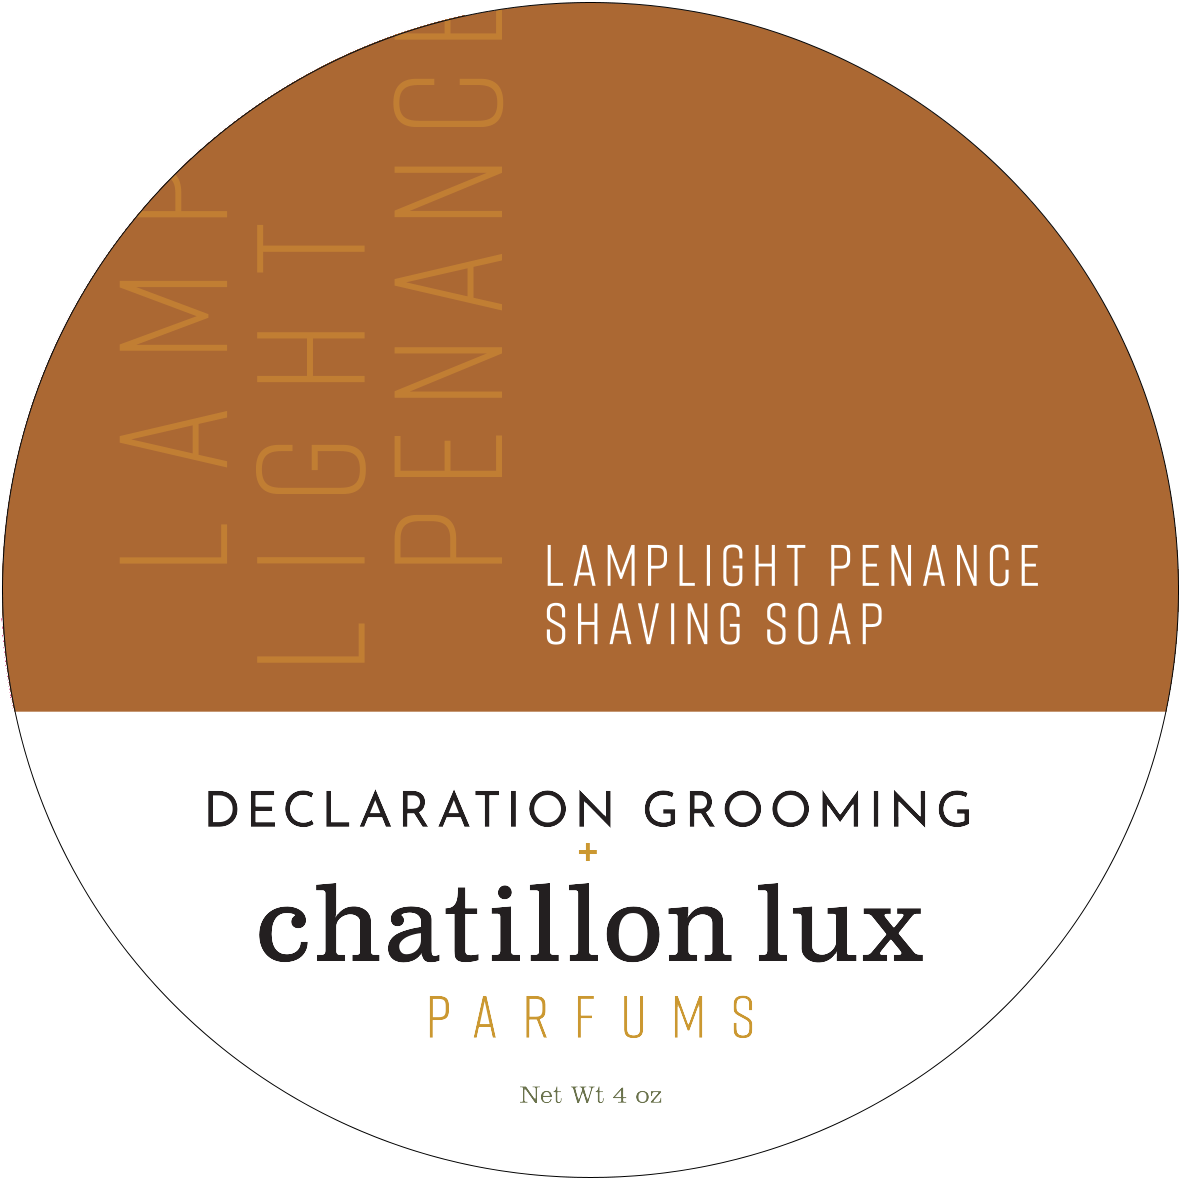 Chatillon Lux / Declaration Grooming - Lamplight Penance, Soap